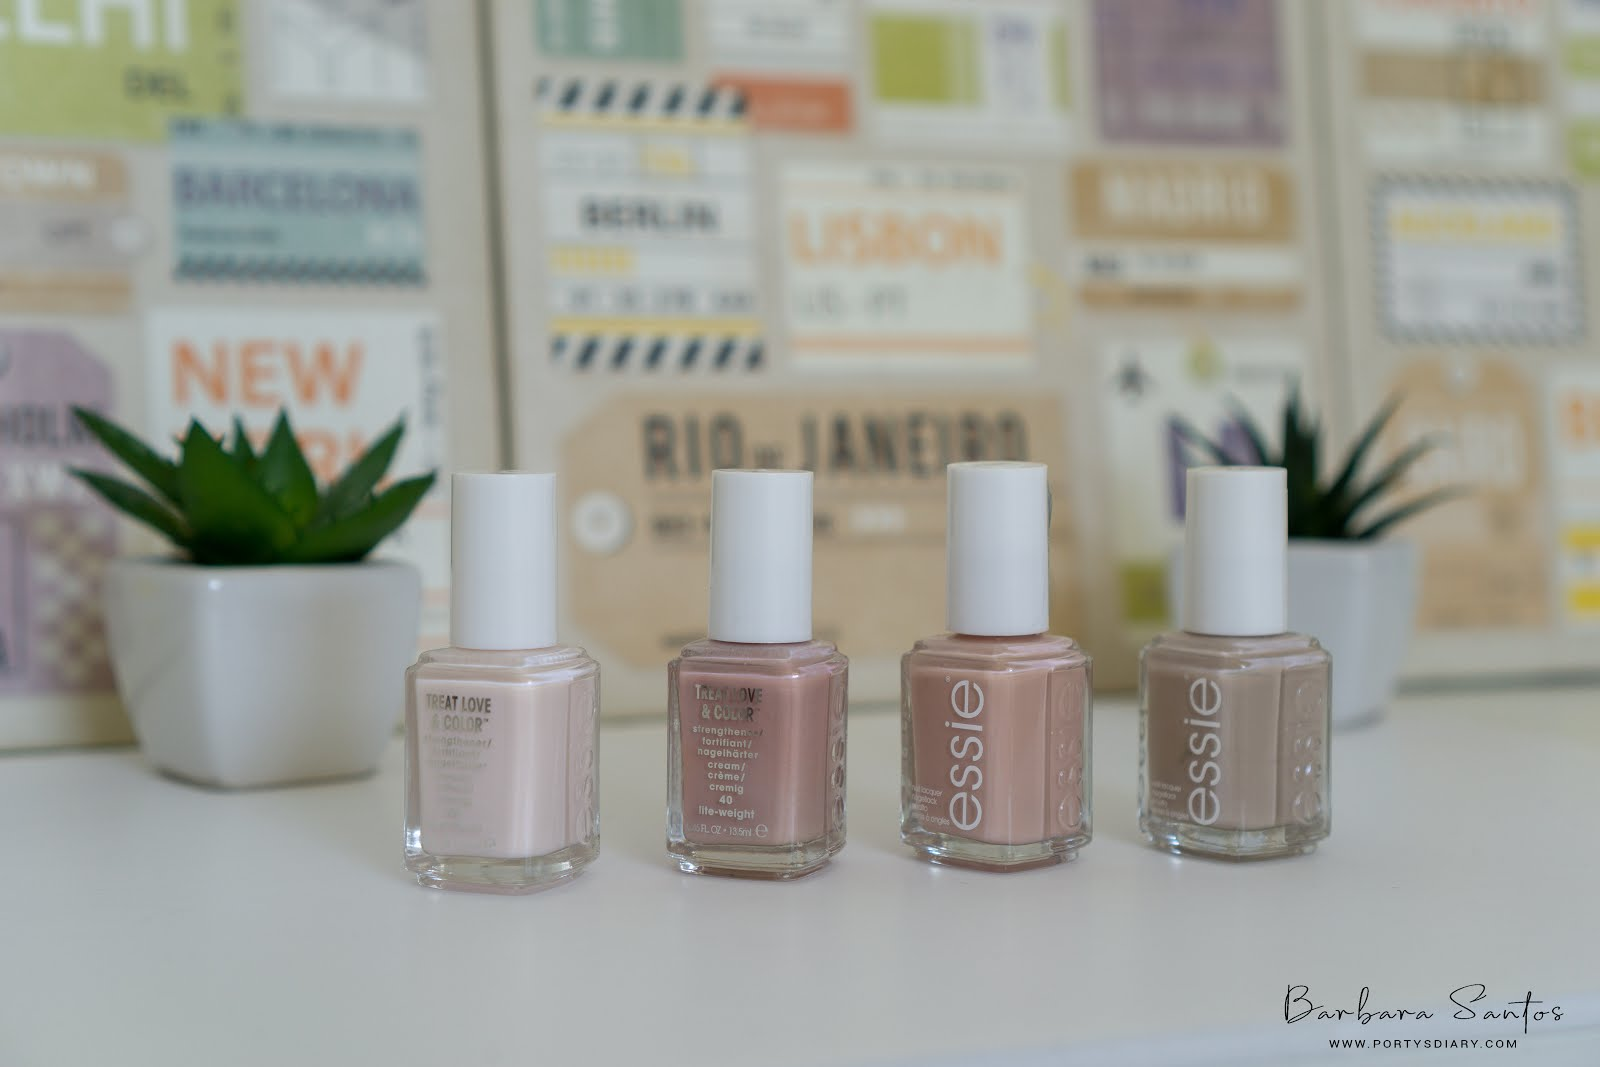 Beauty - Nails favorites of the moment. Includes priming, Color and Remove. Essie, Kiko Milano, Herome, OPI and Sache Vite.